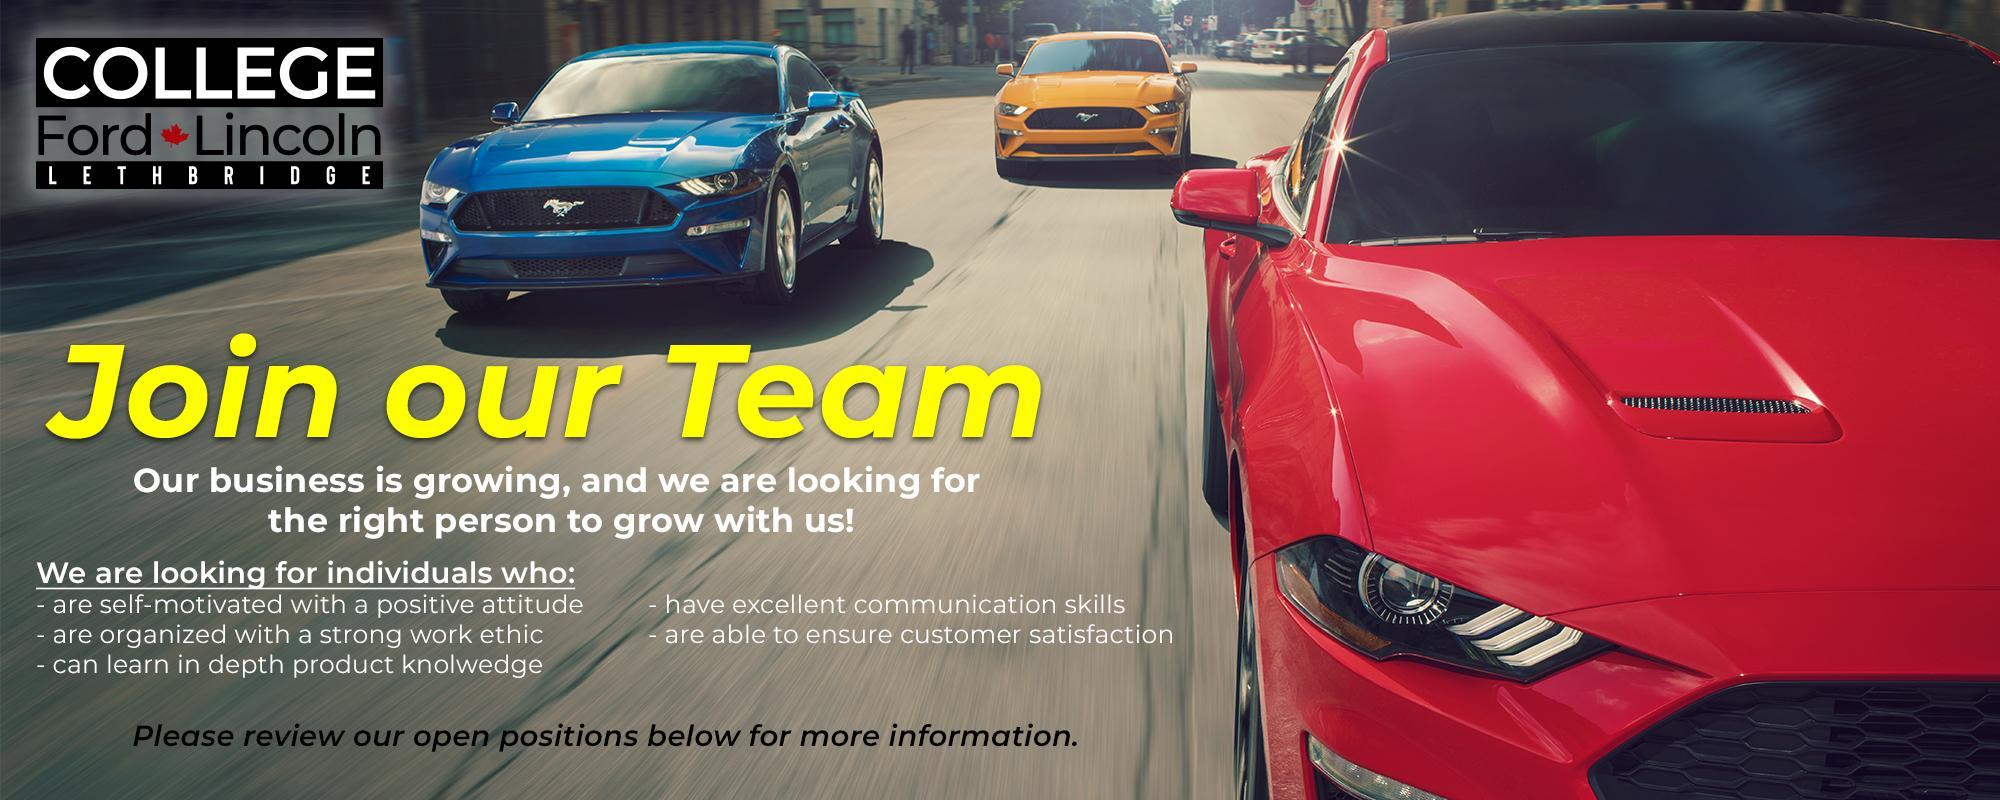 Ford Employment Opportunities image